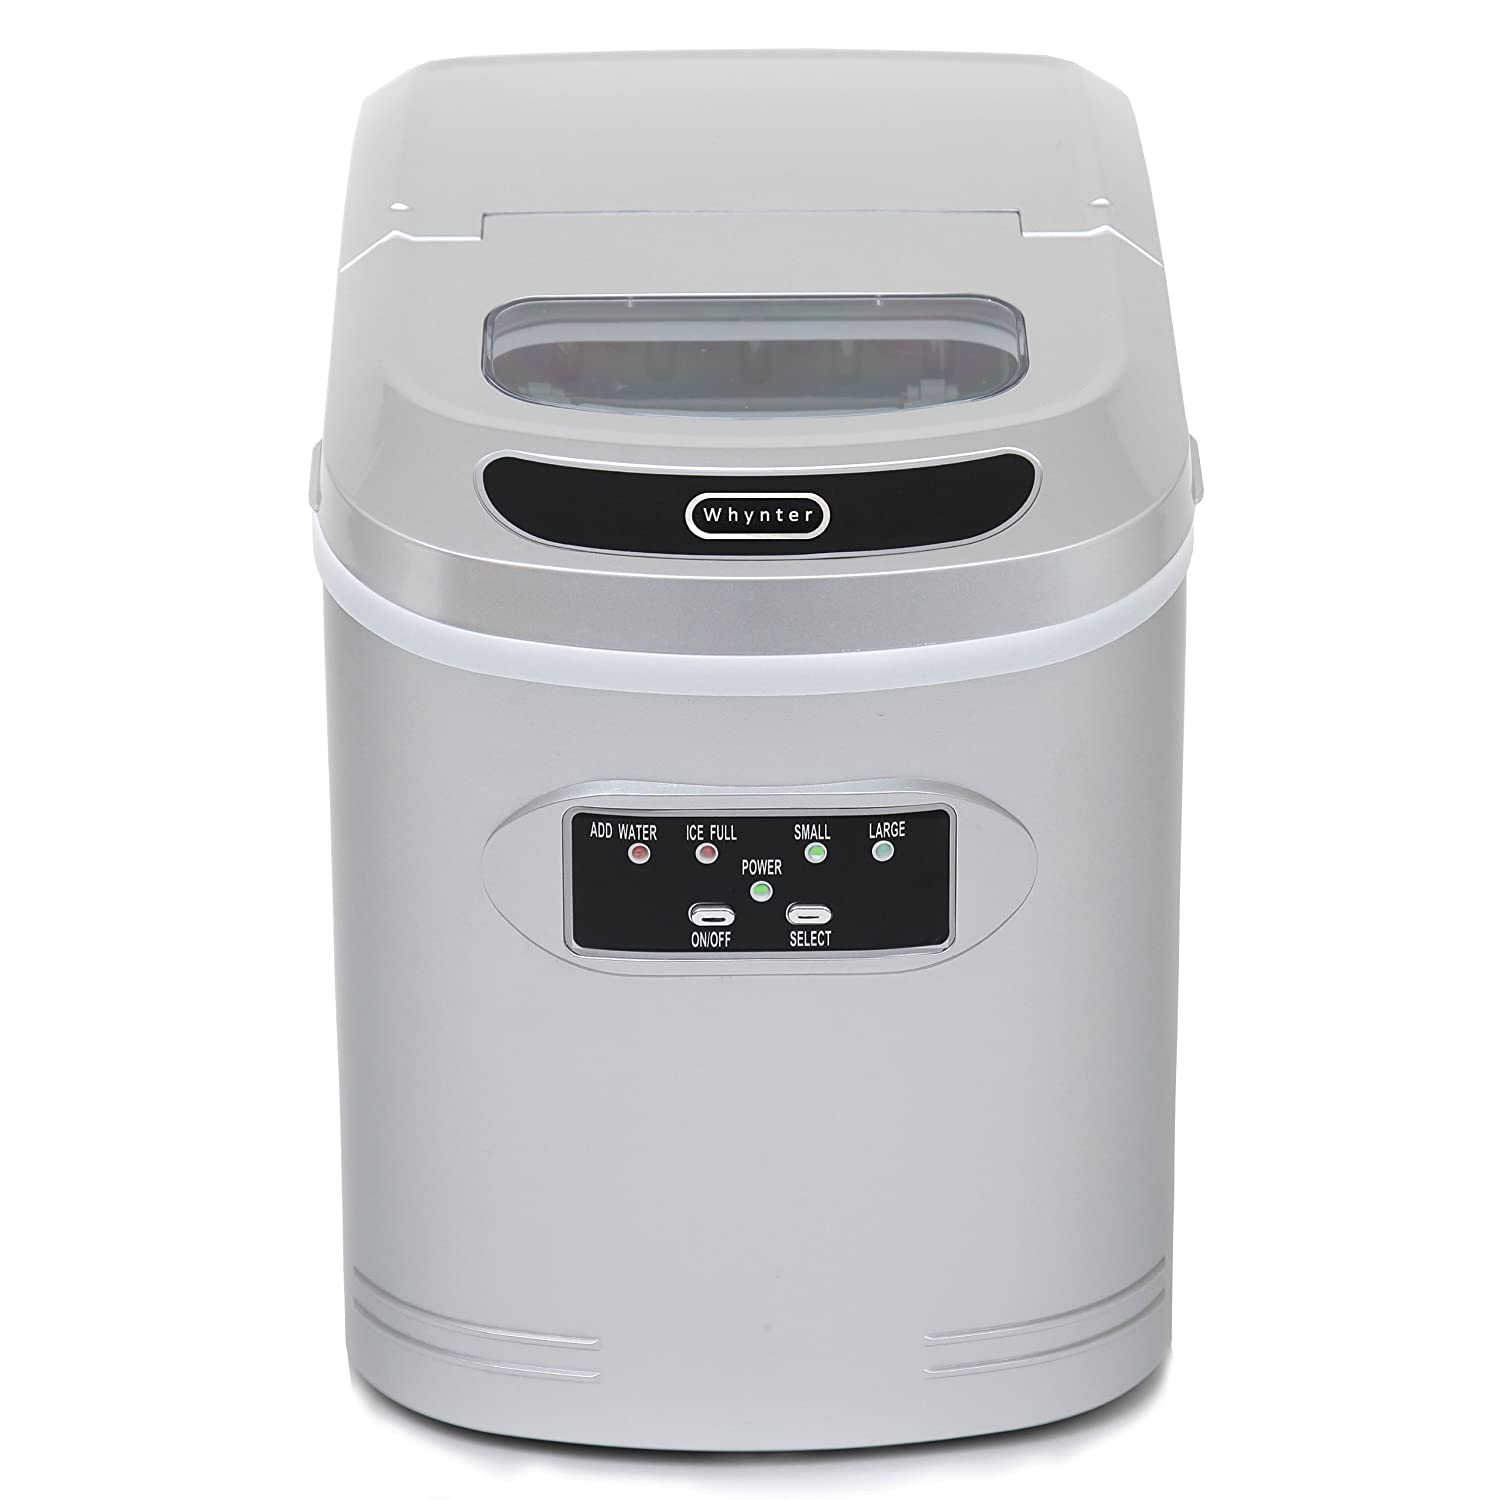 Whynter IMC-270MR Compact Portable Ice Maker, 27 lb. Capacity, Metallic Red Whynter Small Appliances